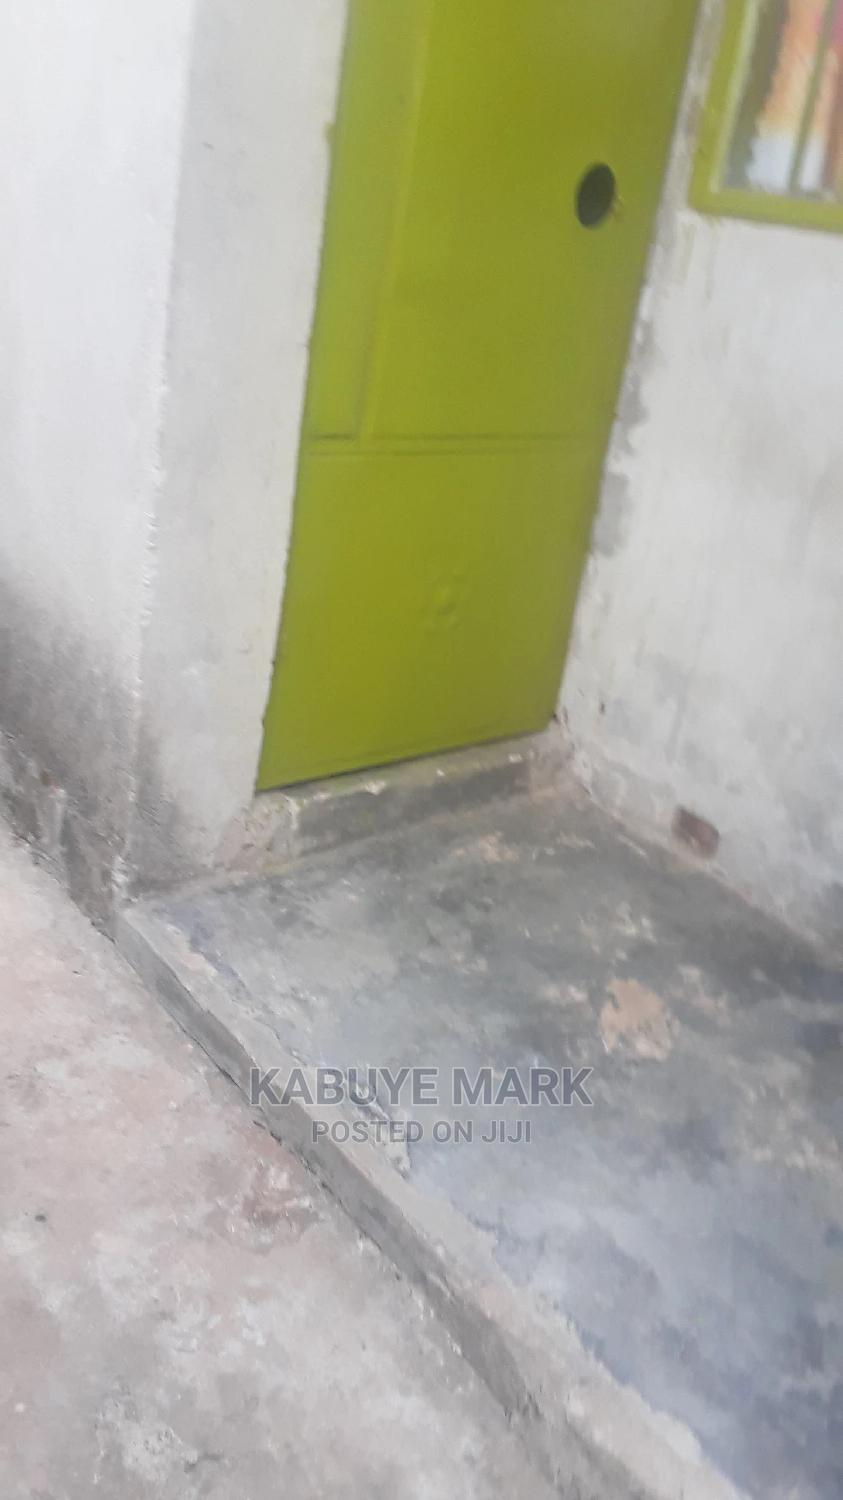 1 Bedroom House In Munyonyo For Rent   Houses & Apartments For Rent for sale in Kampala, Central Region, Uganda